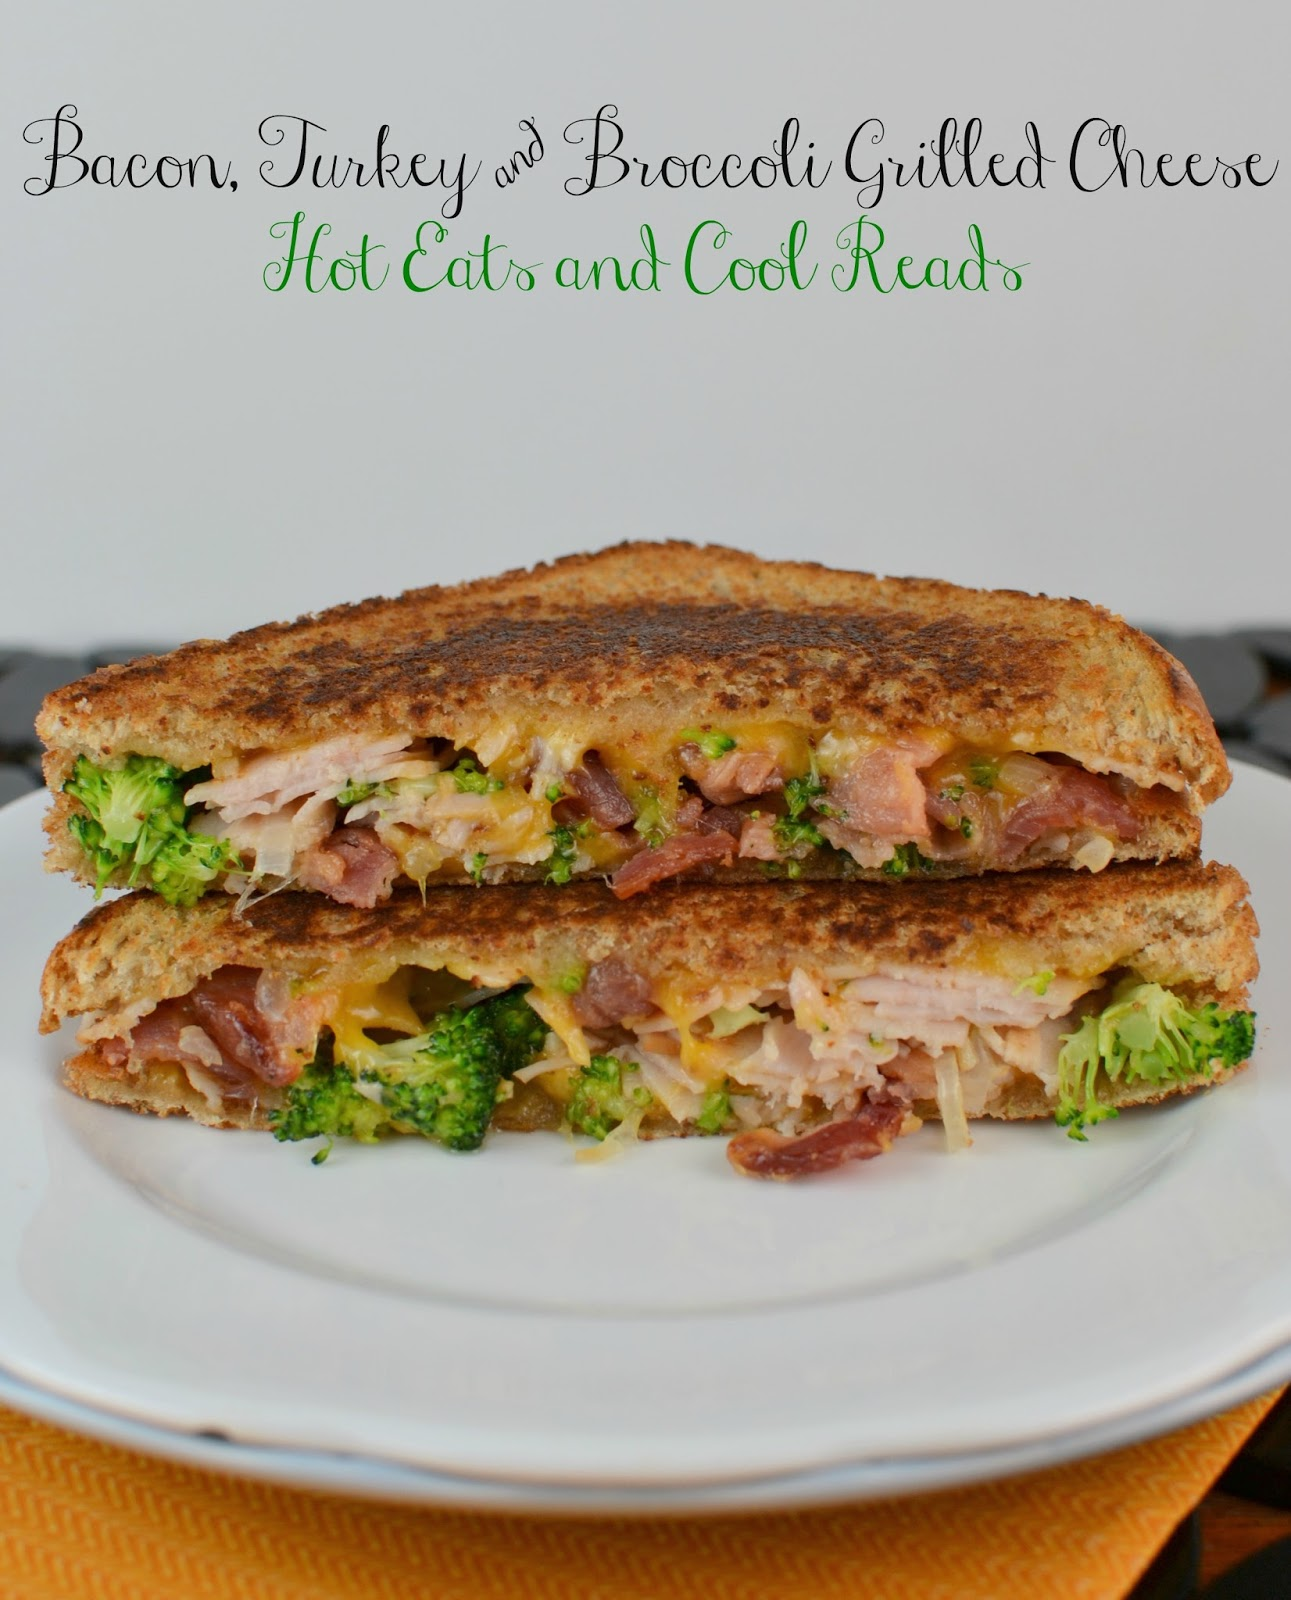 This recipe is perfect for any grilled cheese lover! Full of bacony, cheesy goodness! Turkey, Broccoli and Cheddar Grilled Cheese Sandwich from Hot Eats and Cool Reads!